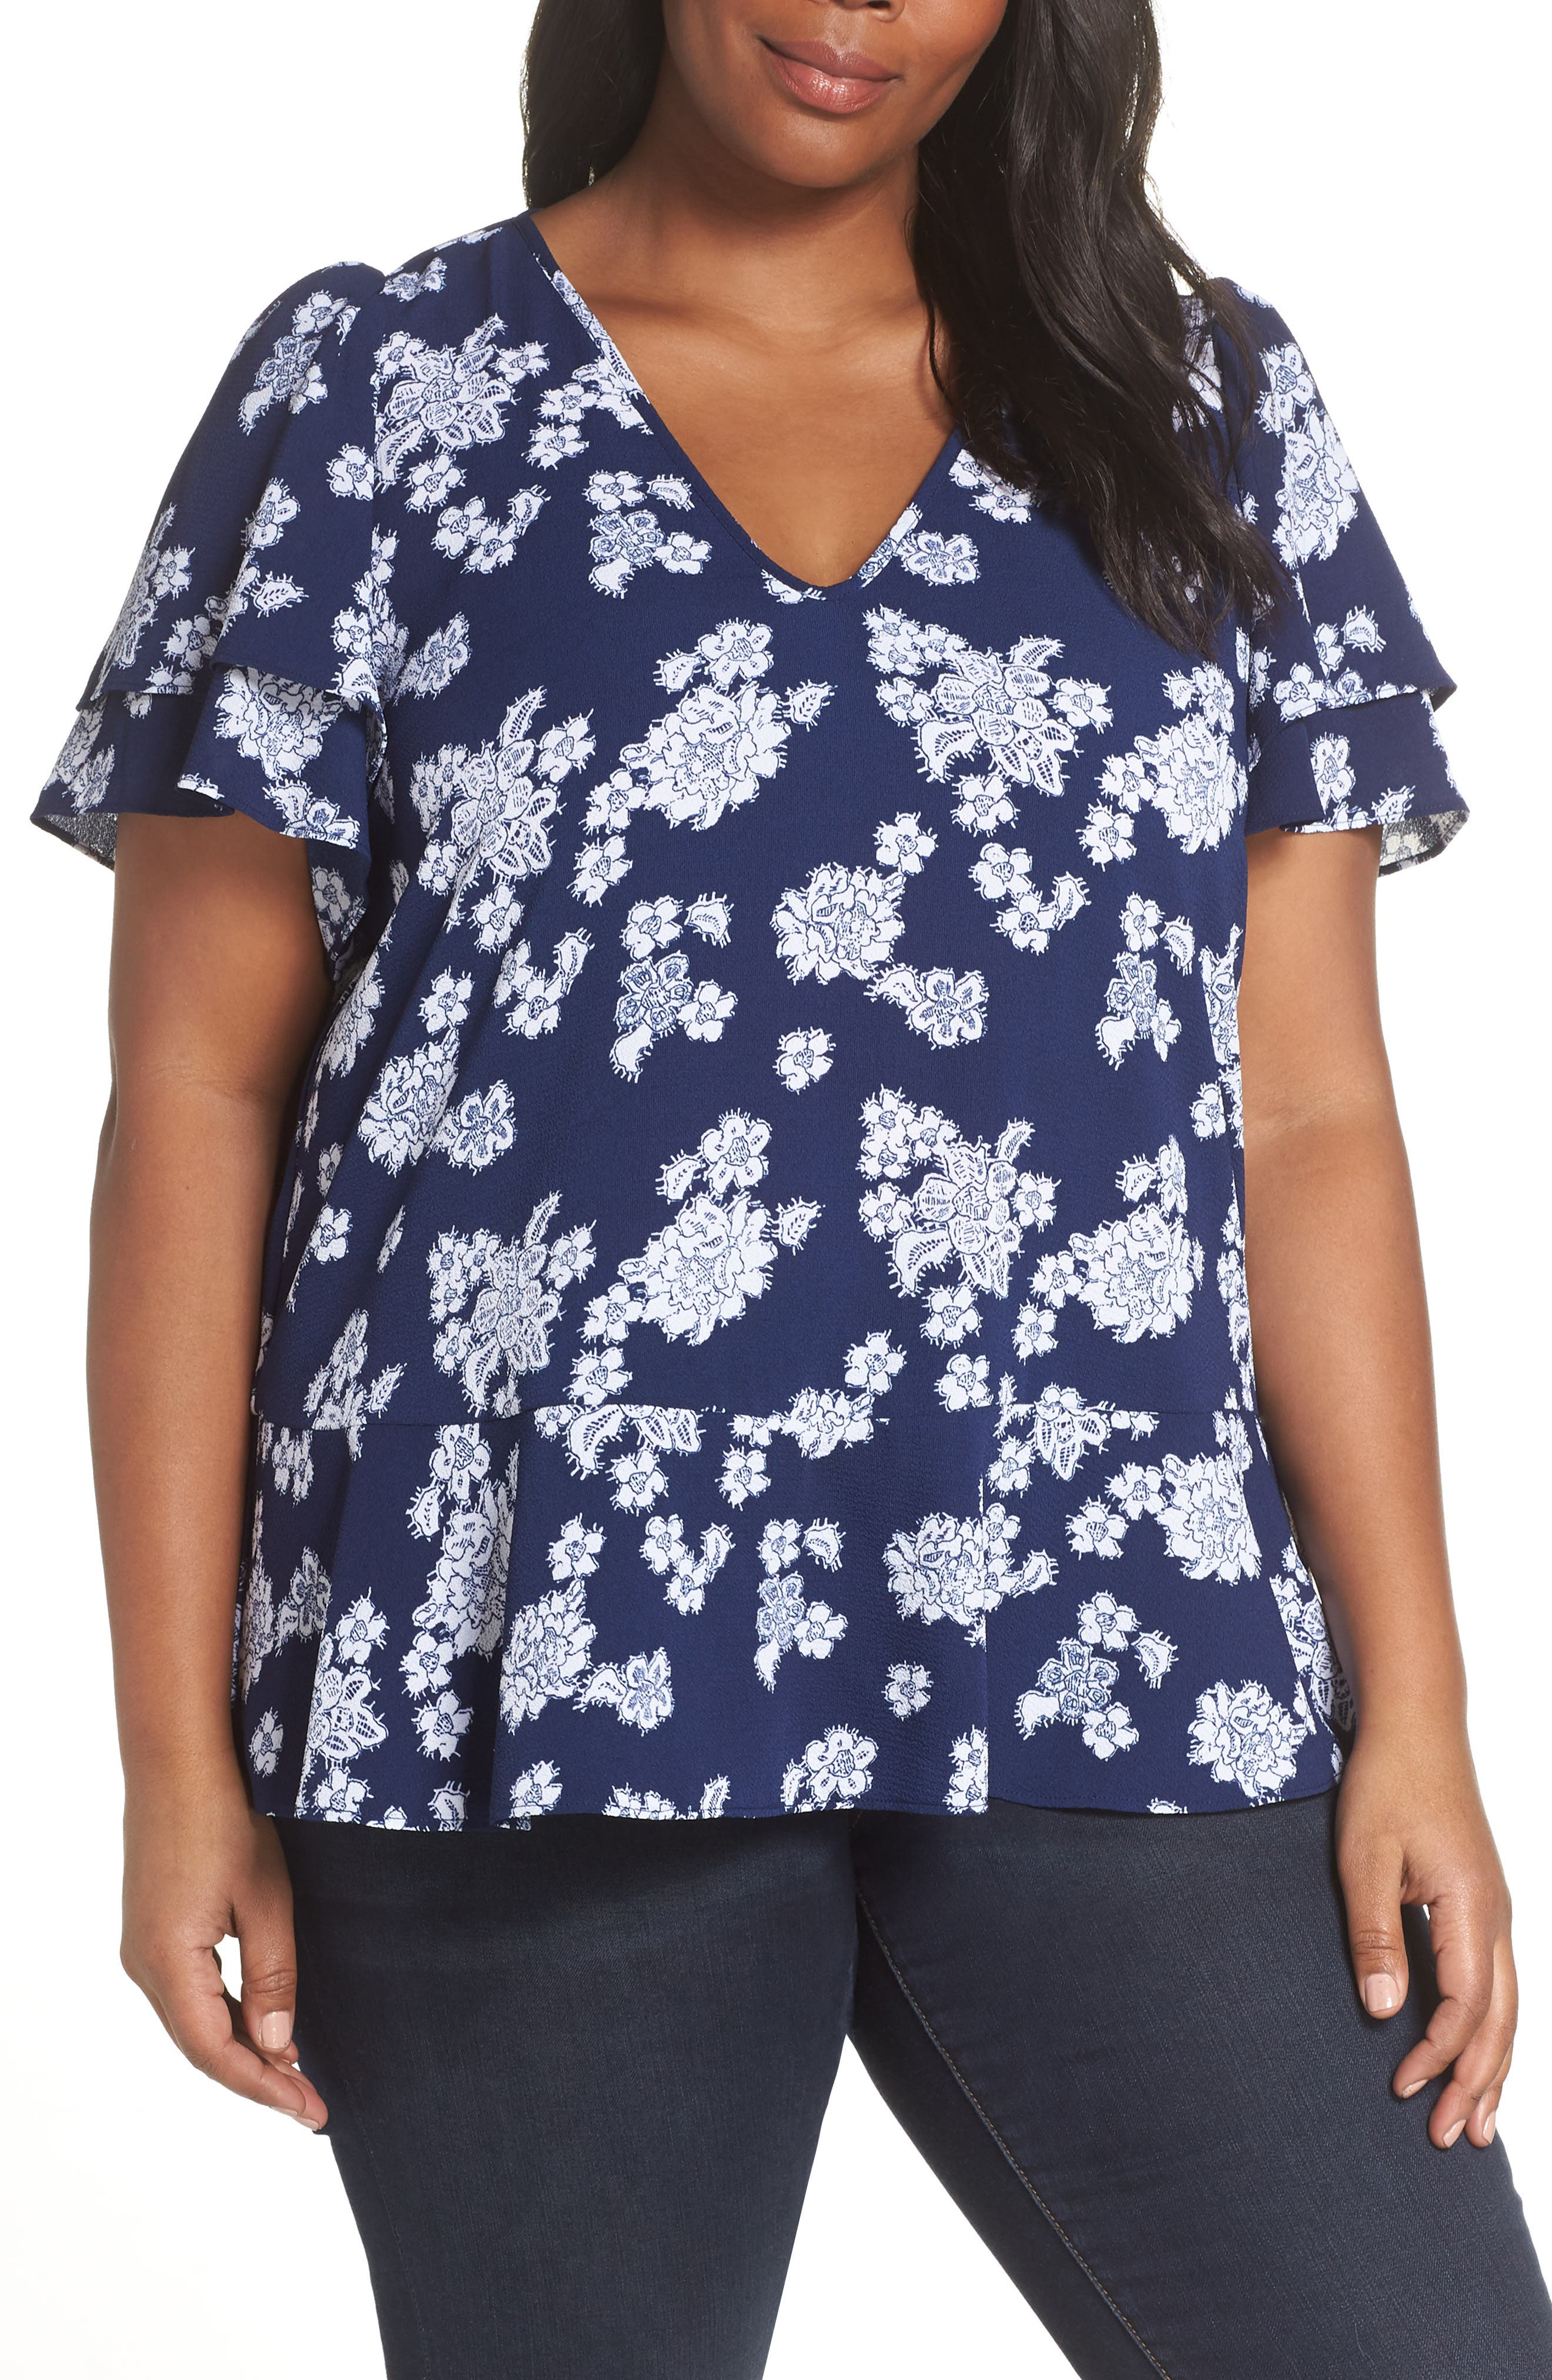 Tossed Lace Flowers Top, Main, color, TRUE NAVY/ WHITE